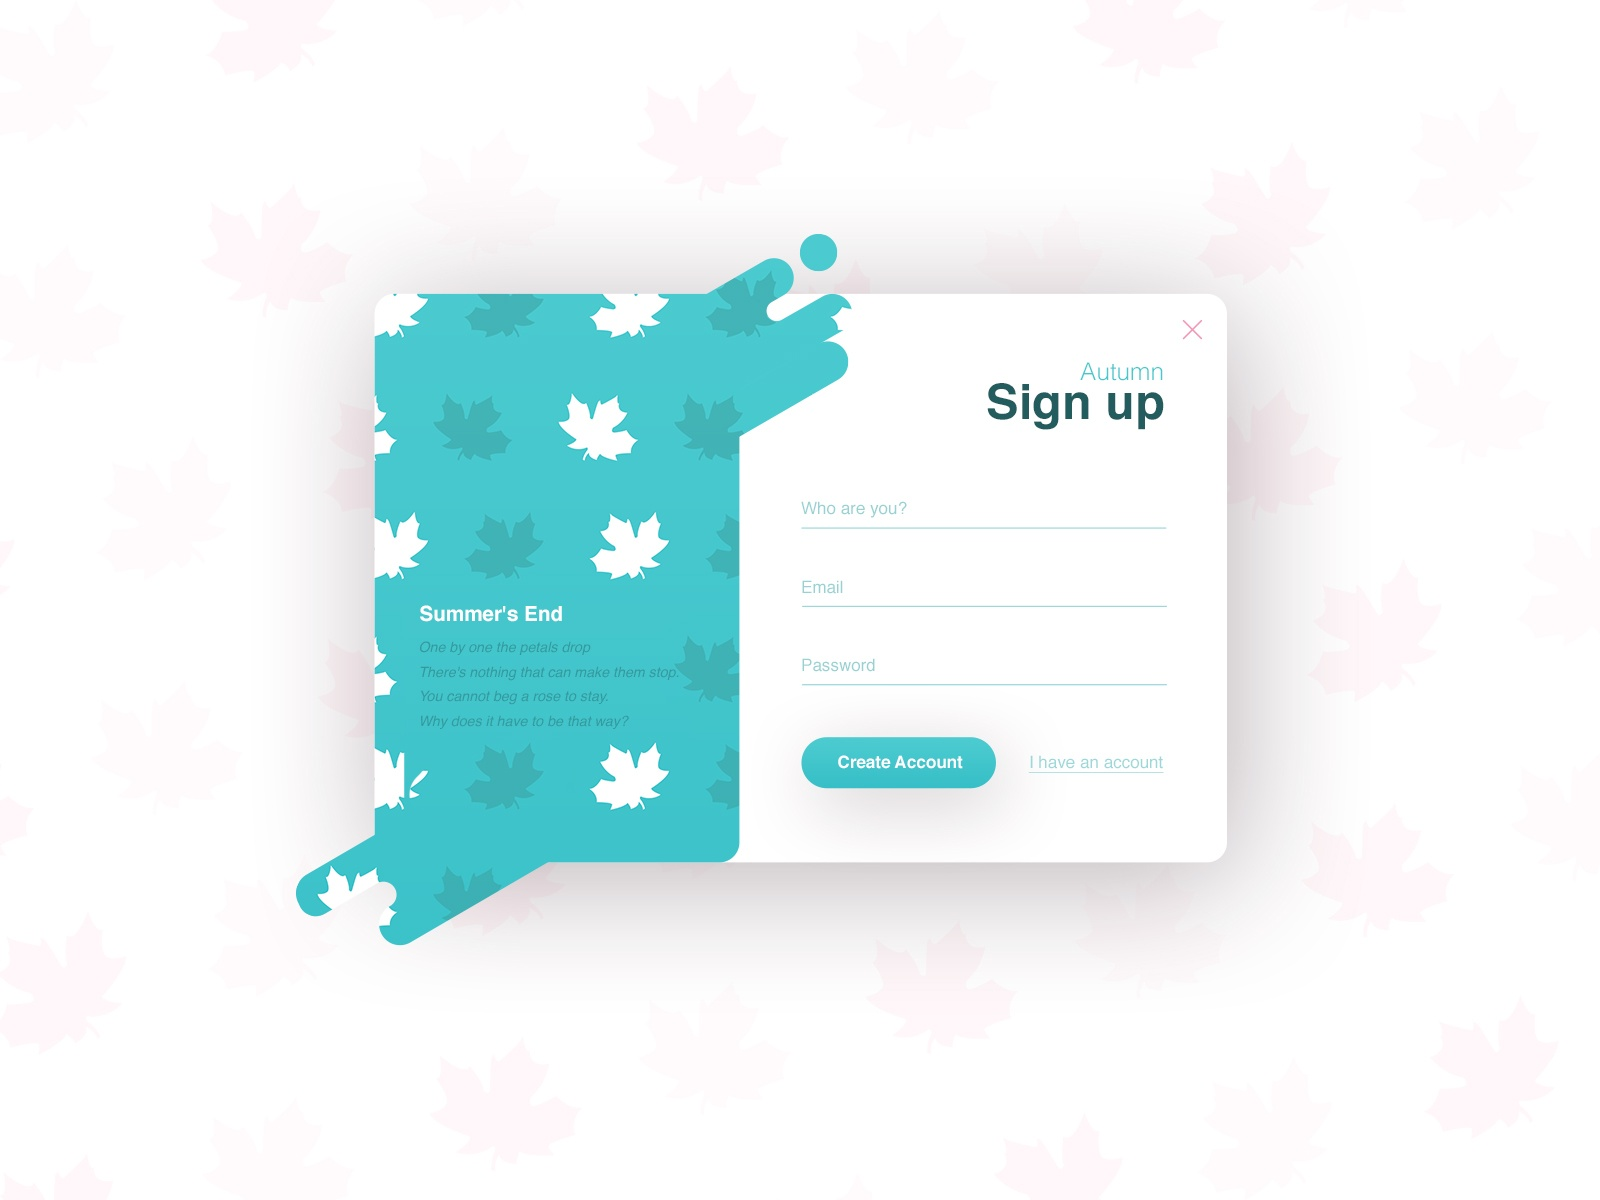 Sign-up Forms (season series) №4 - Autumn